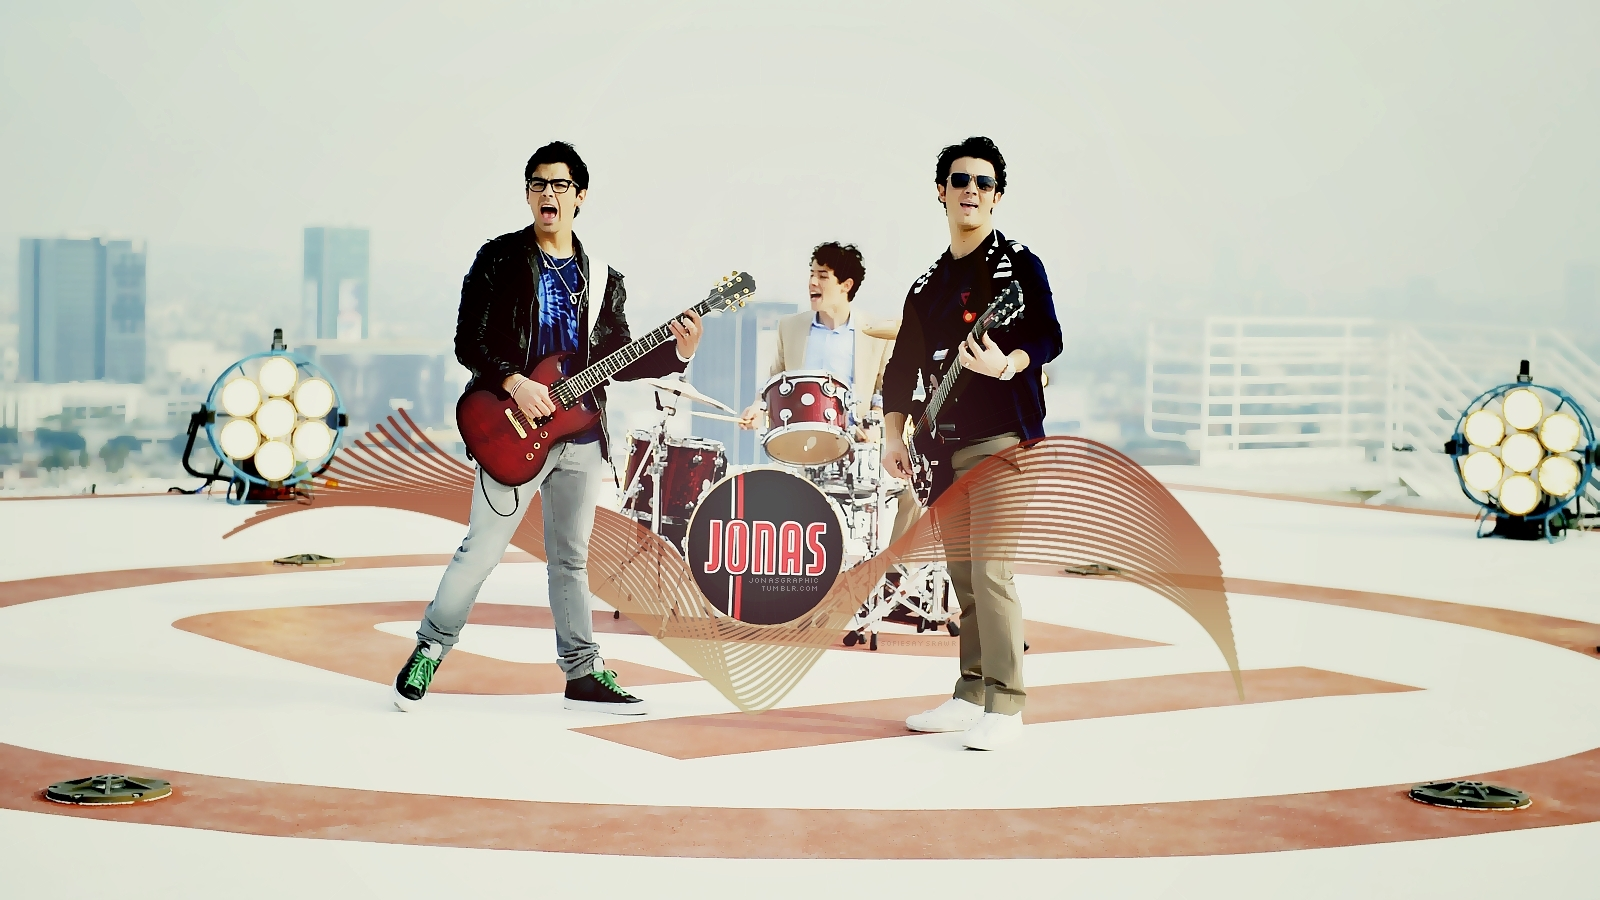 http://images2.fanpop.com/image/photos/14300000/JONAS-LA-Wallpaper-jonas-la-14333656-1600-900.jpg